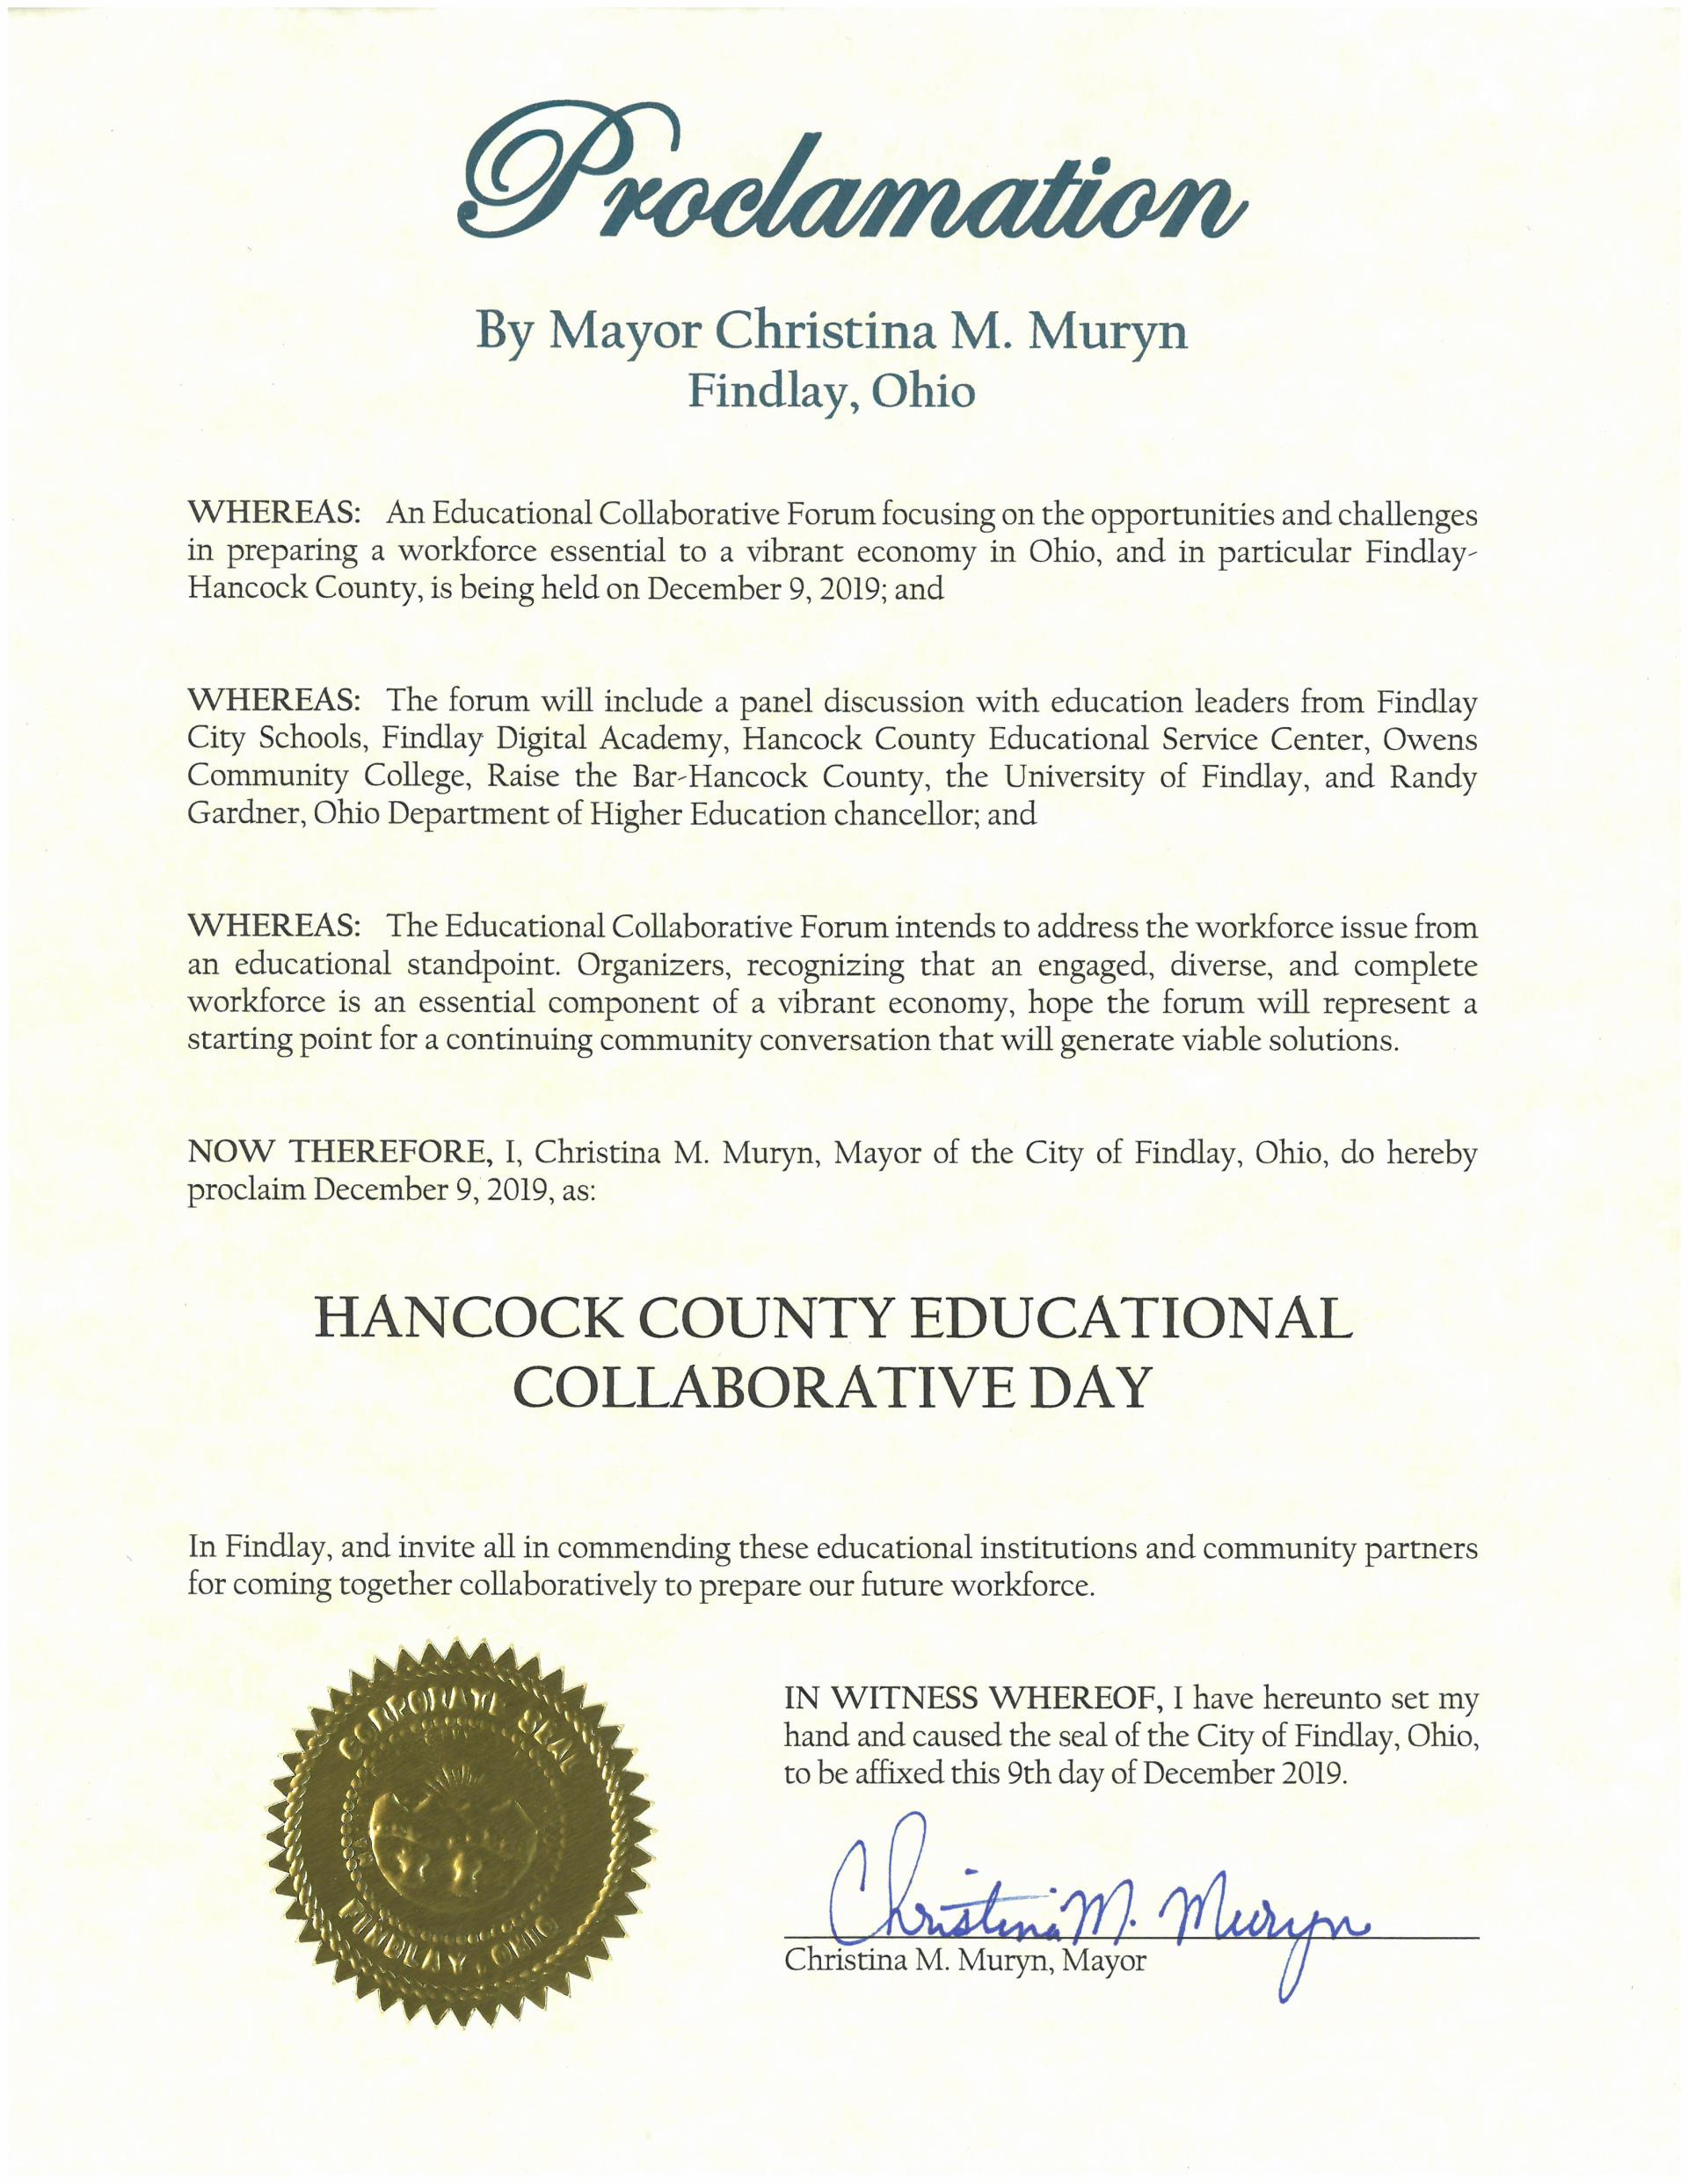 2019.12.09.Hancock County Educational Collaborative Day